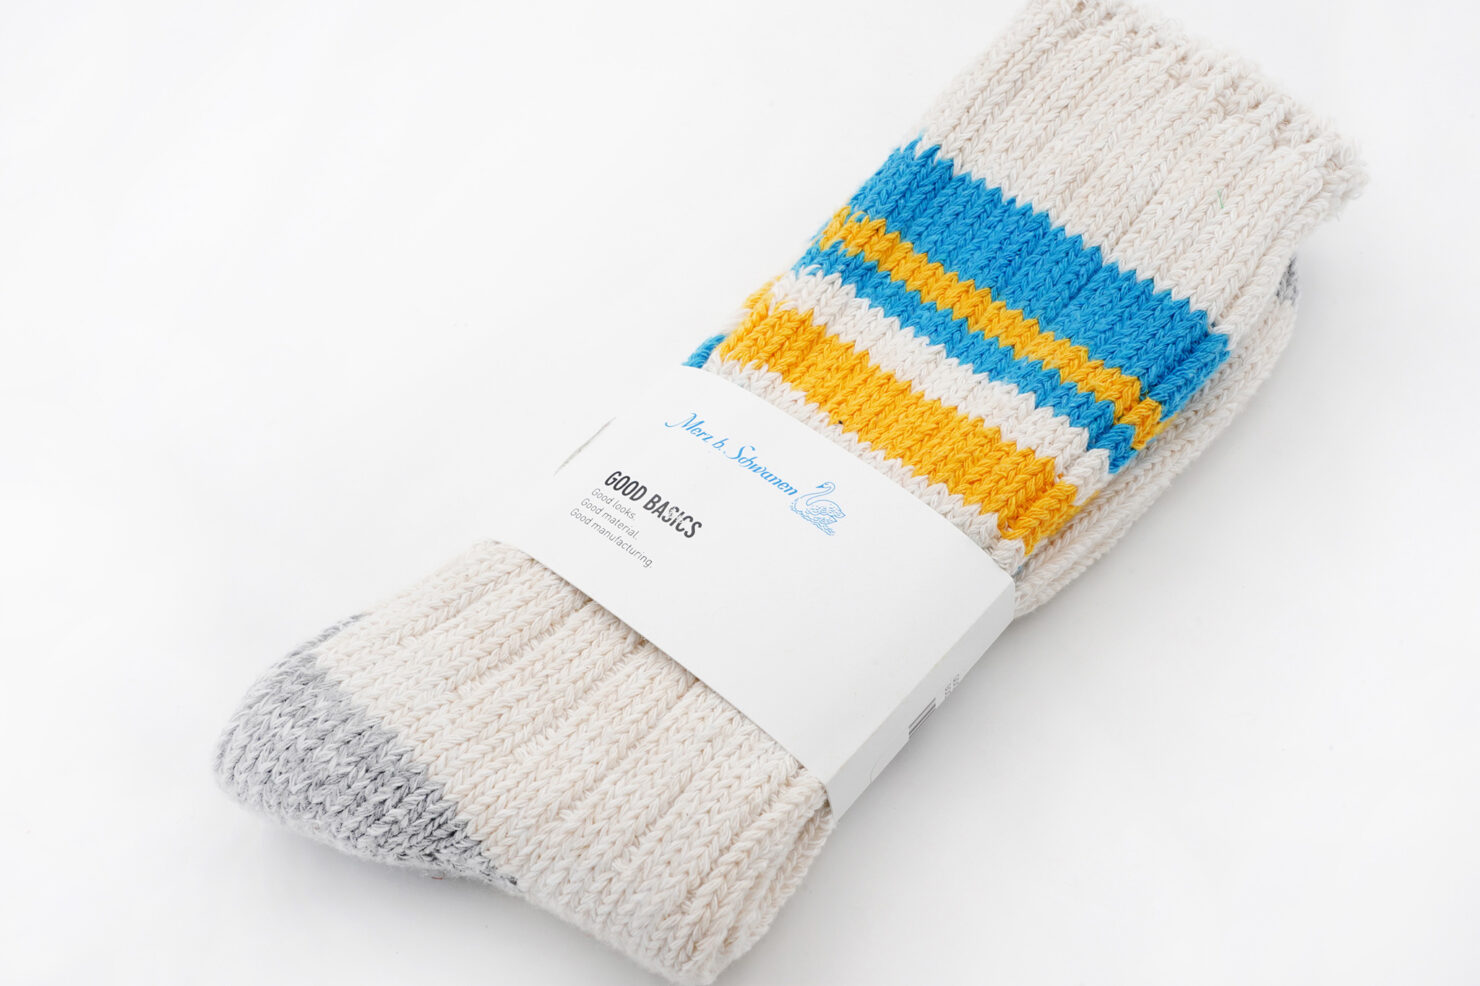 GOOD BASICS SOCKS NATURE/SKY - MERZ B. SCHWANEN